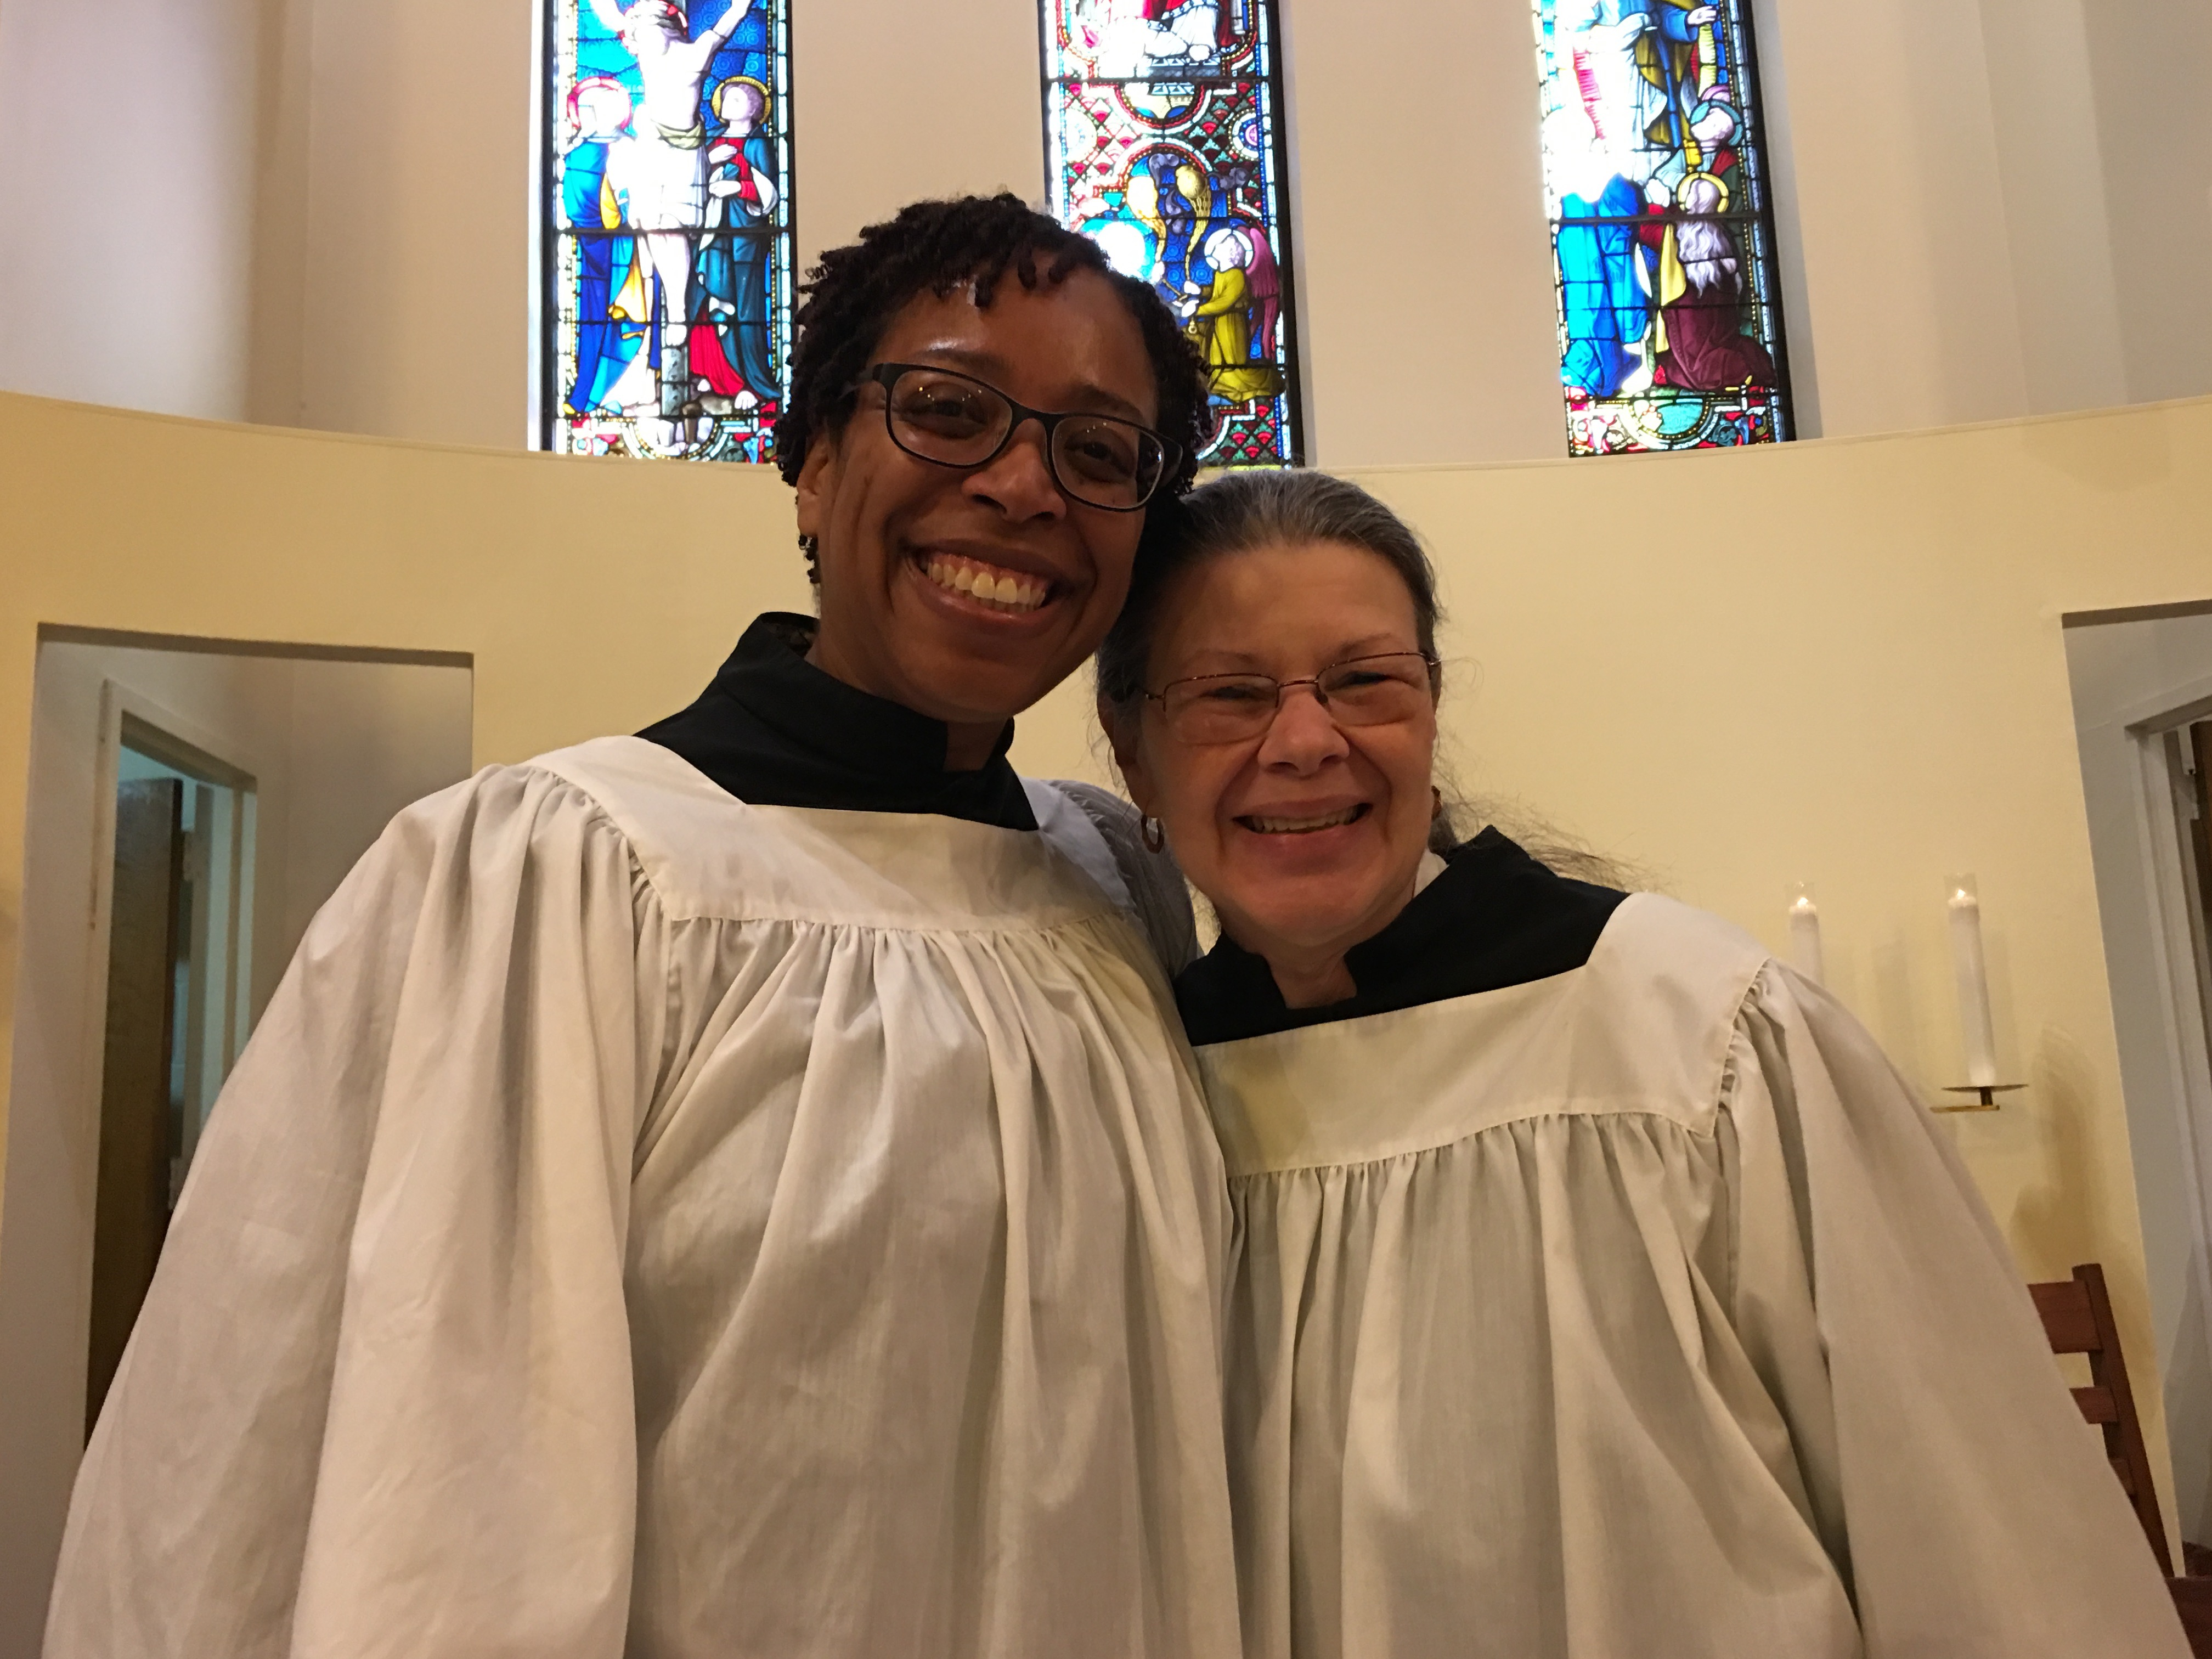 Newest choir members Christiane joins Evelyn on the altar